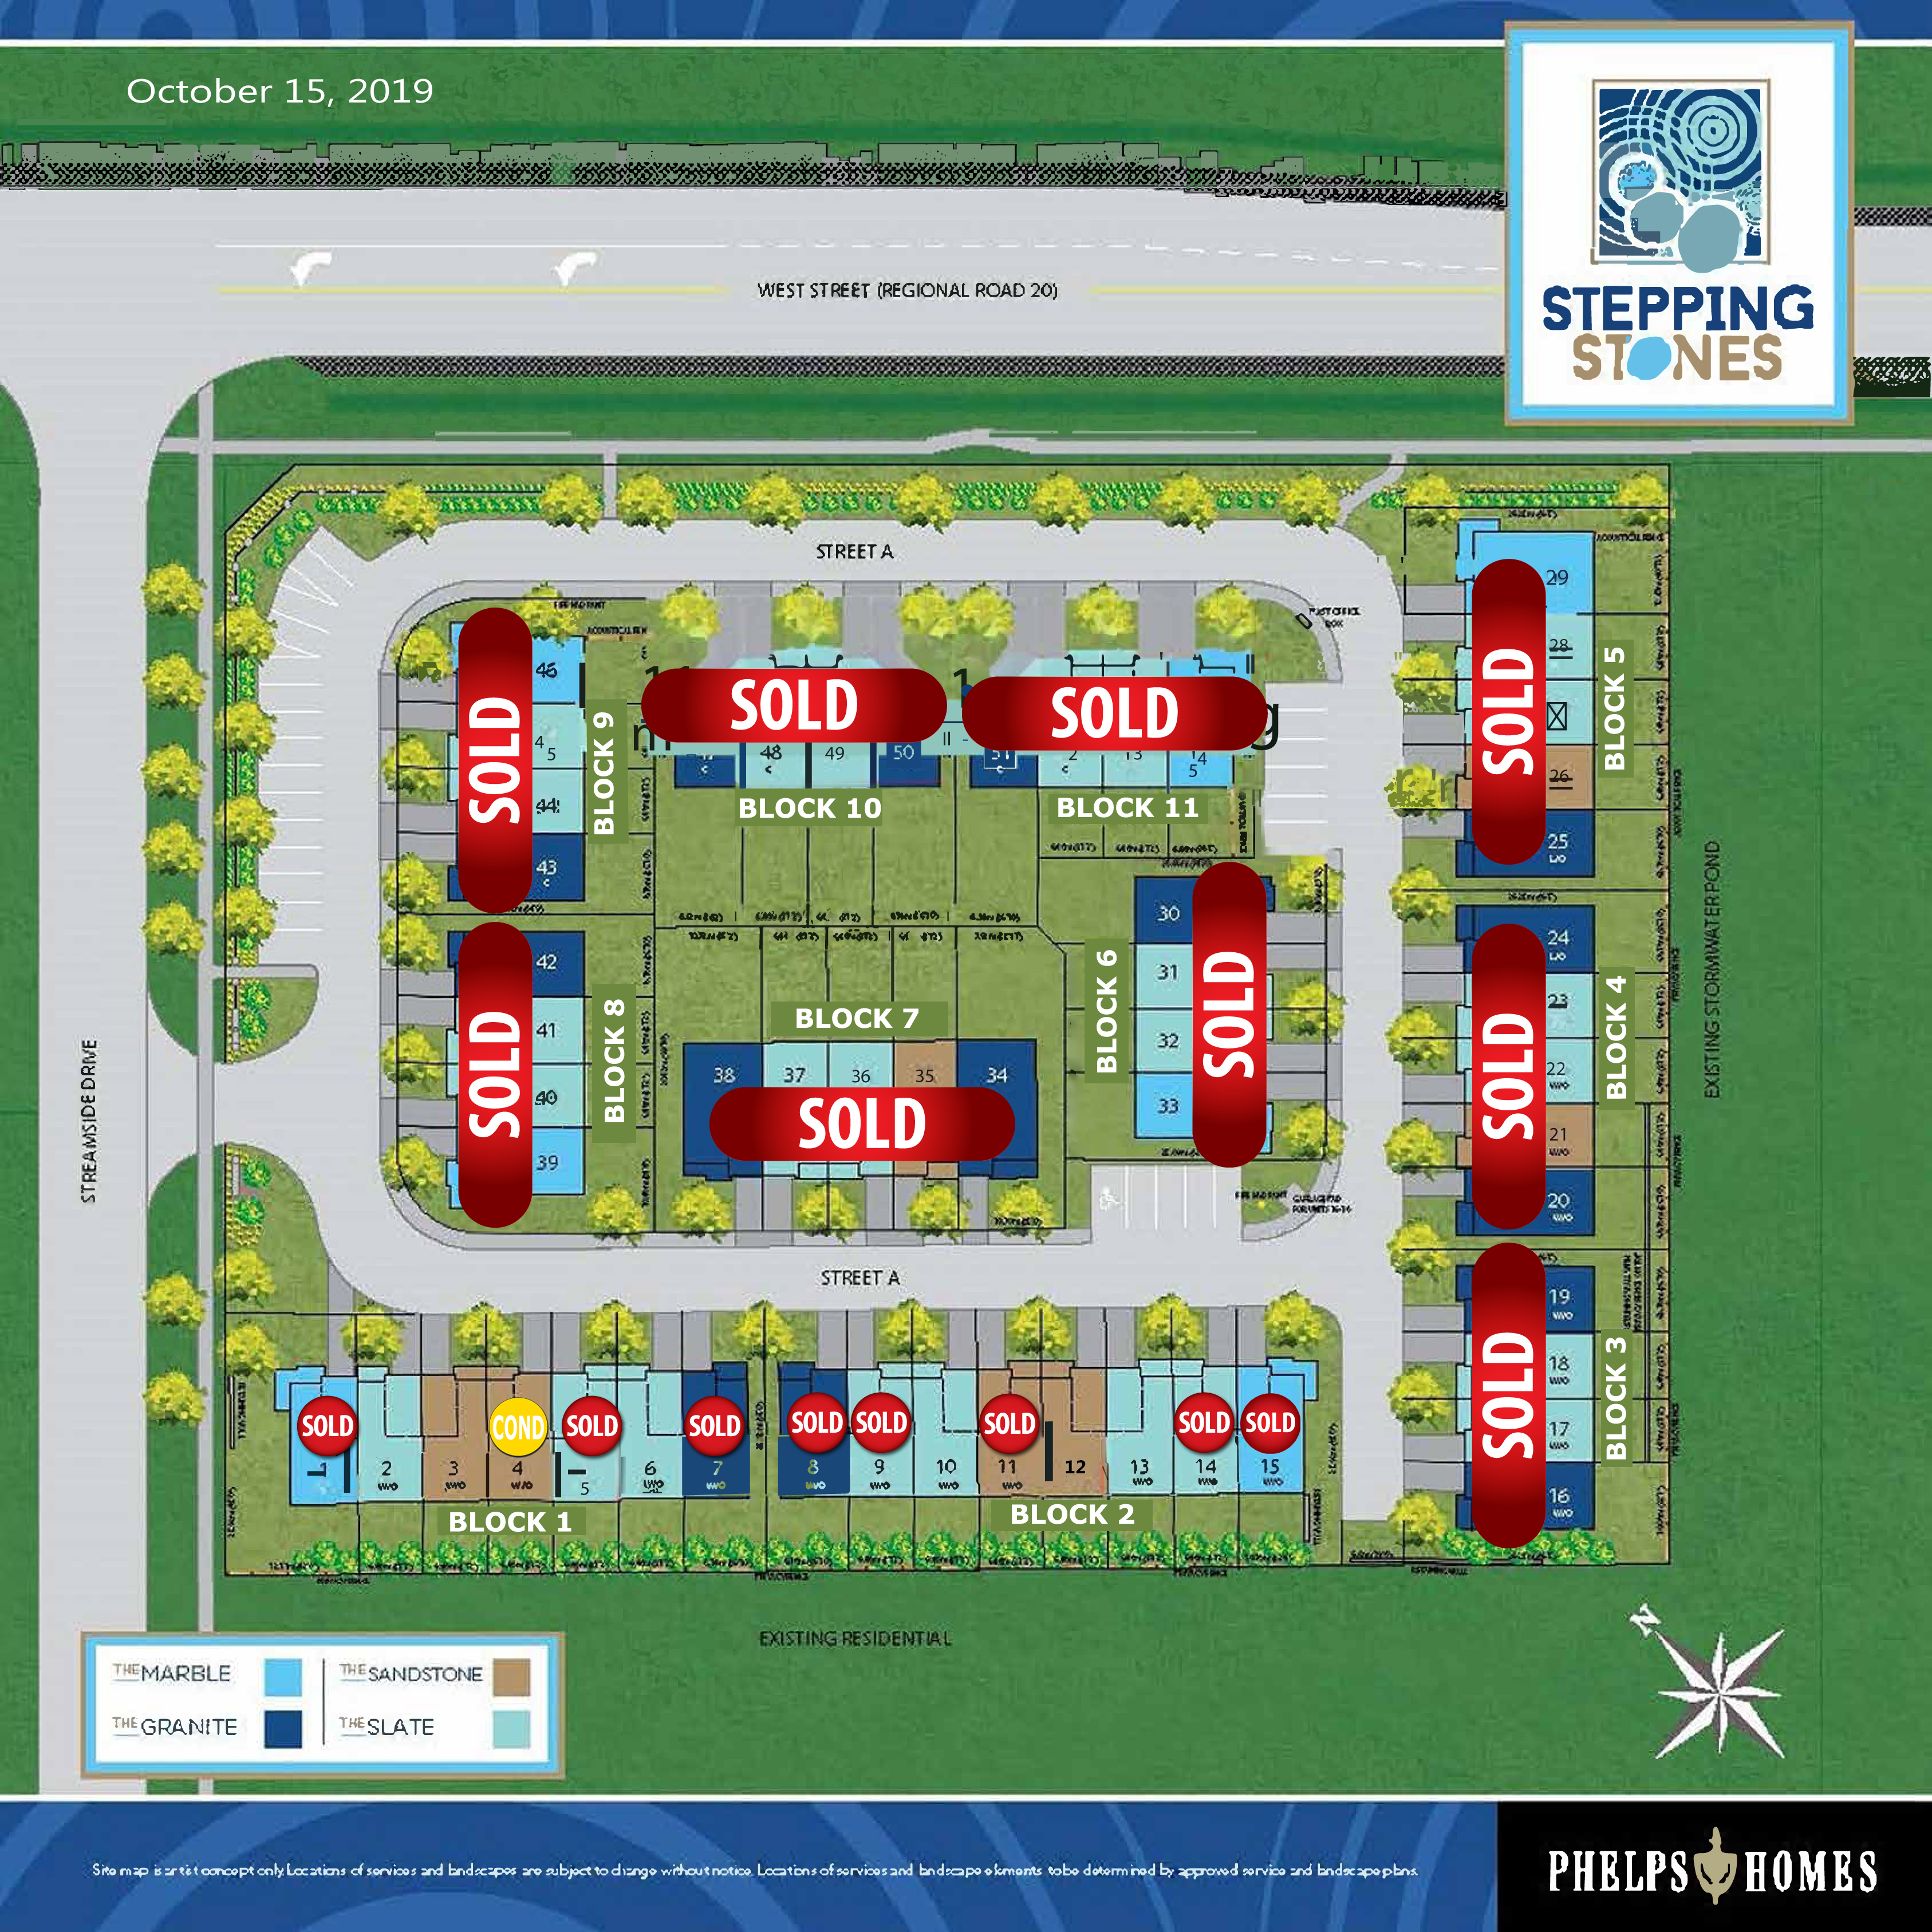 Stepping Stones Site Plan - 10.15